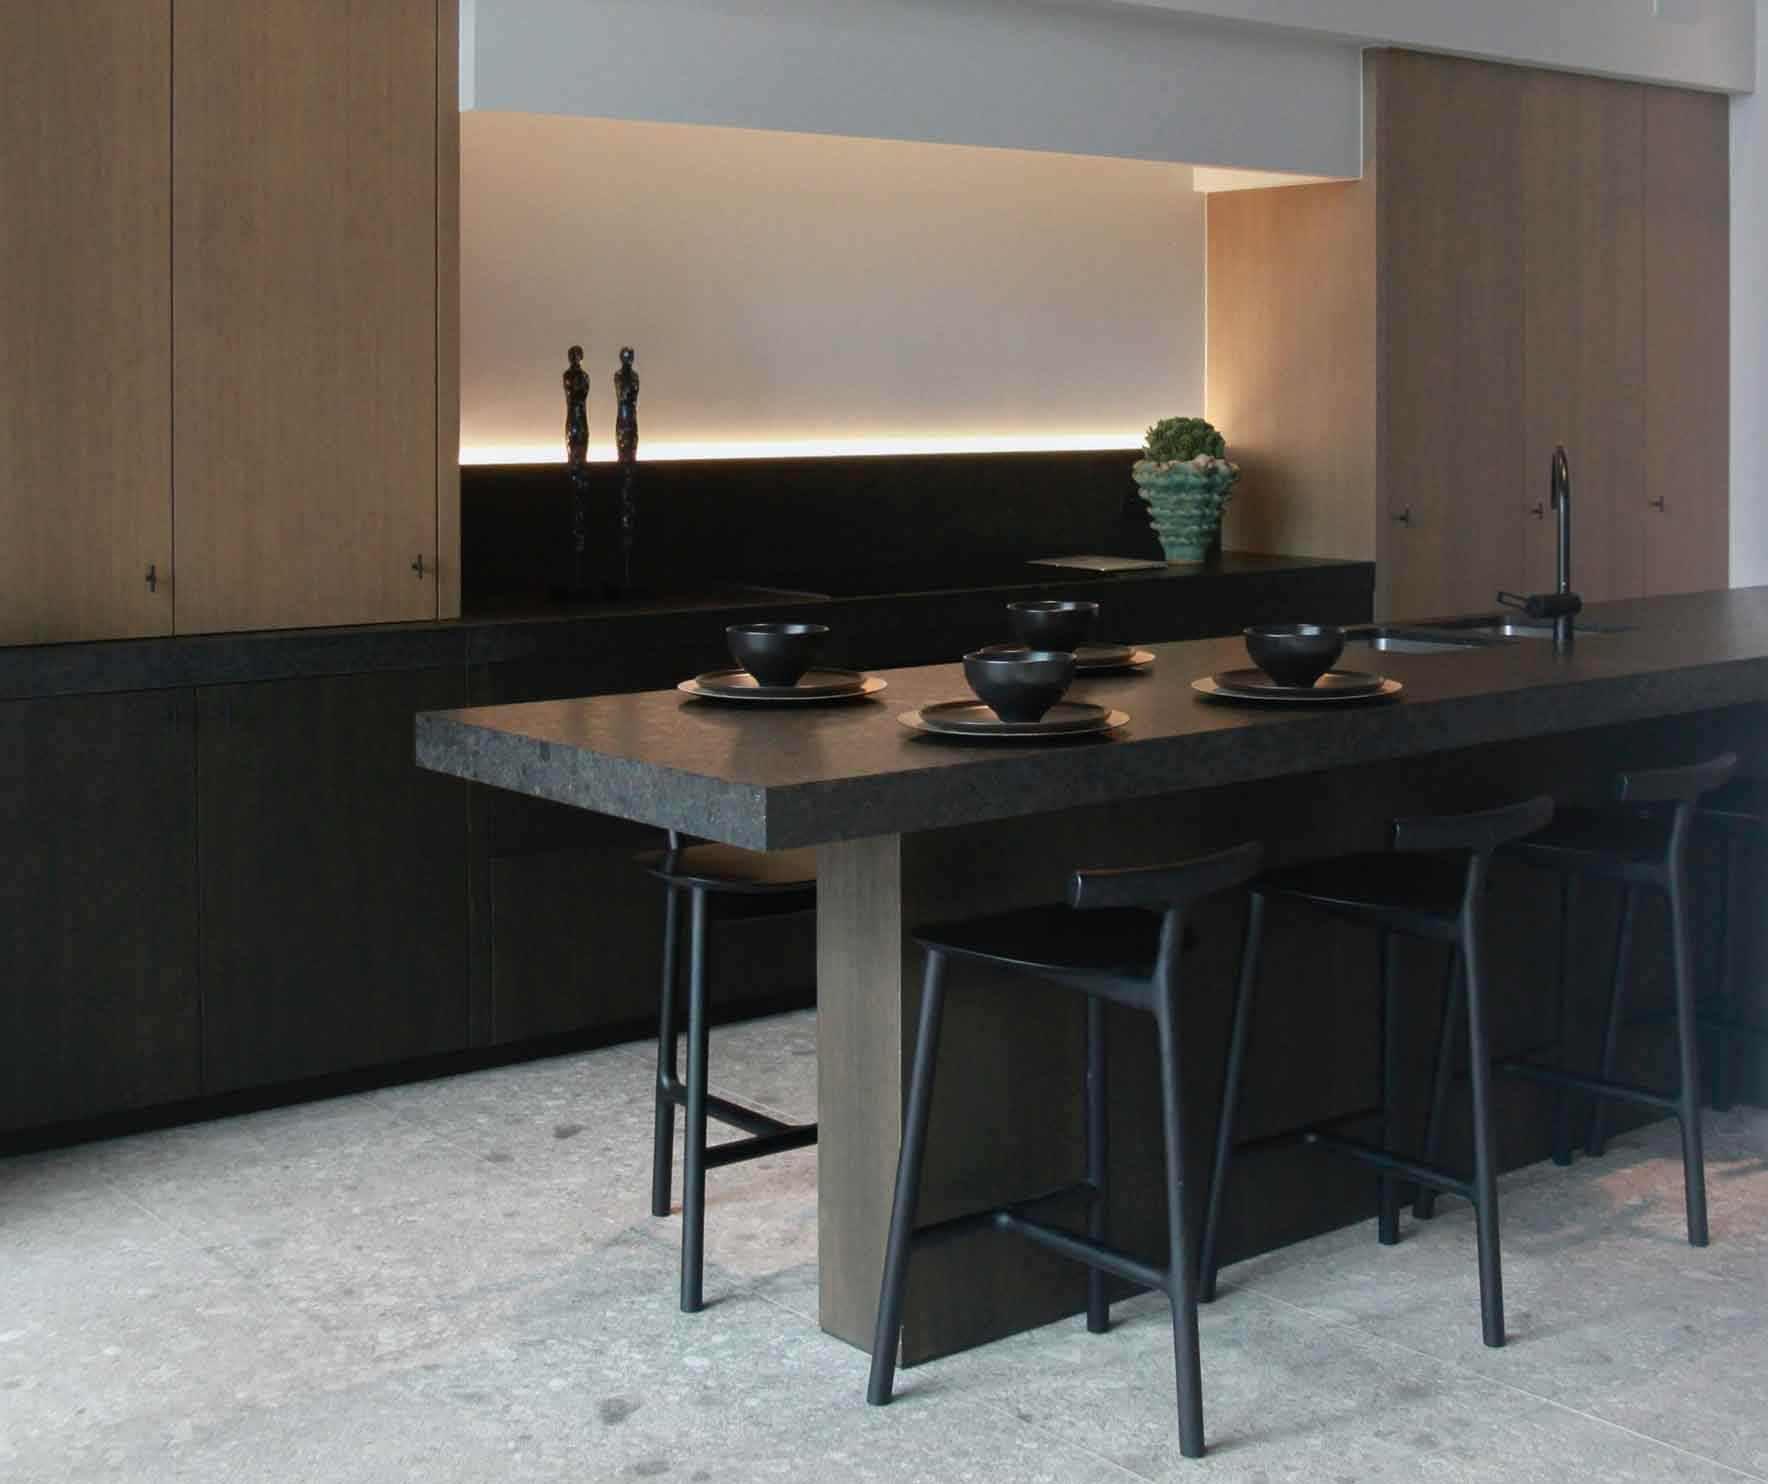 Picture of modern kitchen with dark honed granite countertops.